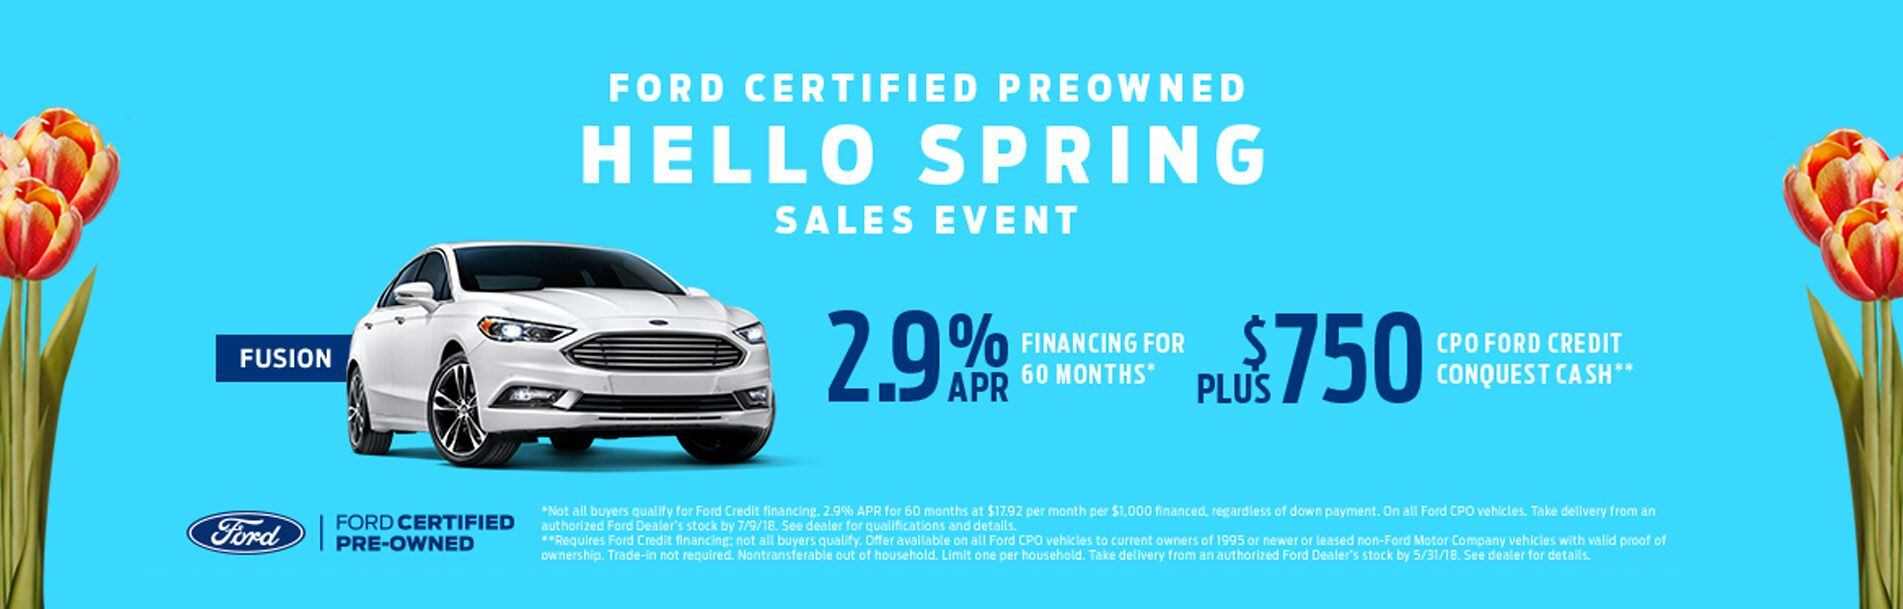 Certified preowned Fords at Rochester Ford